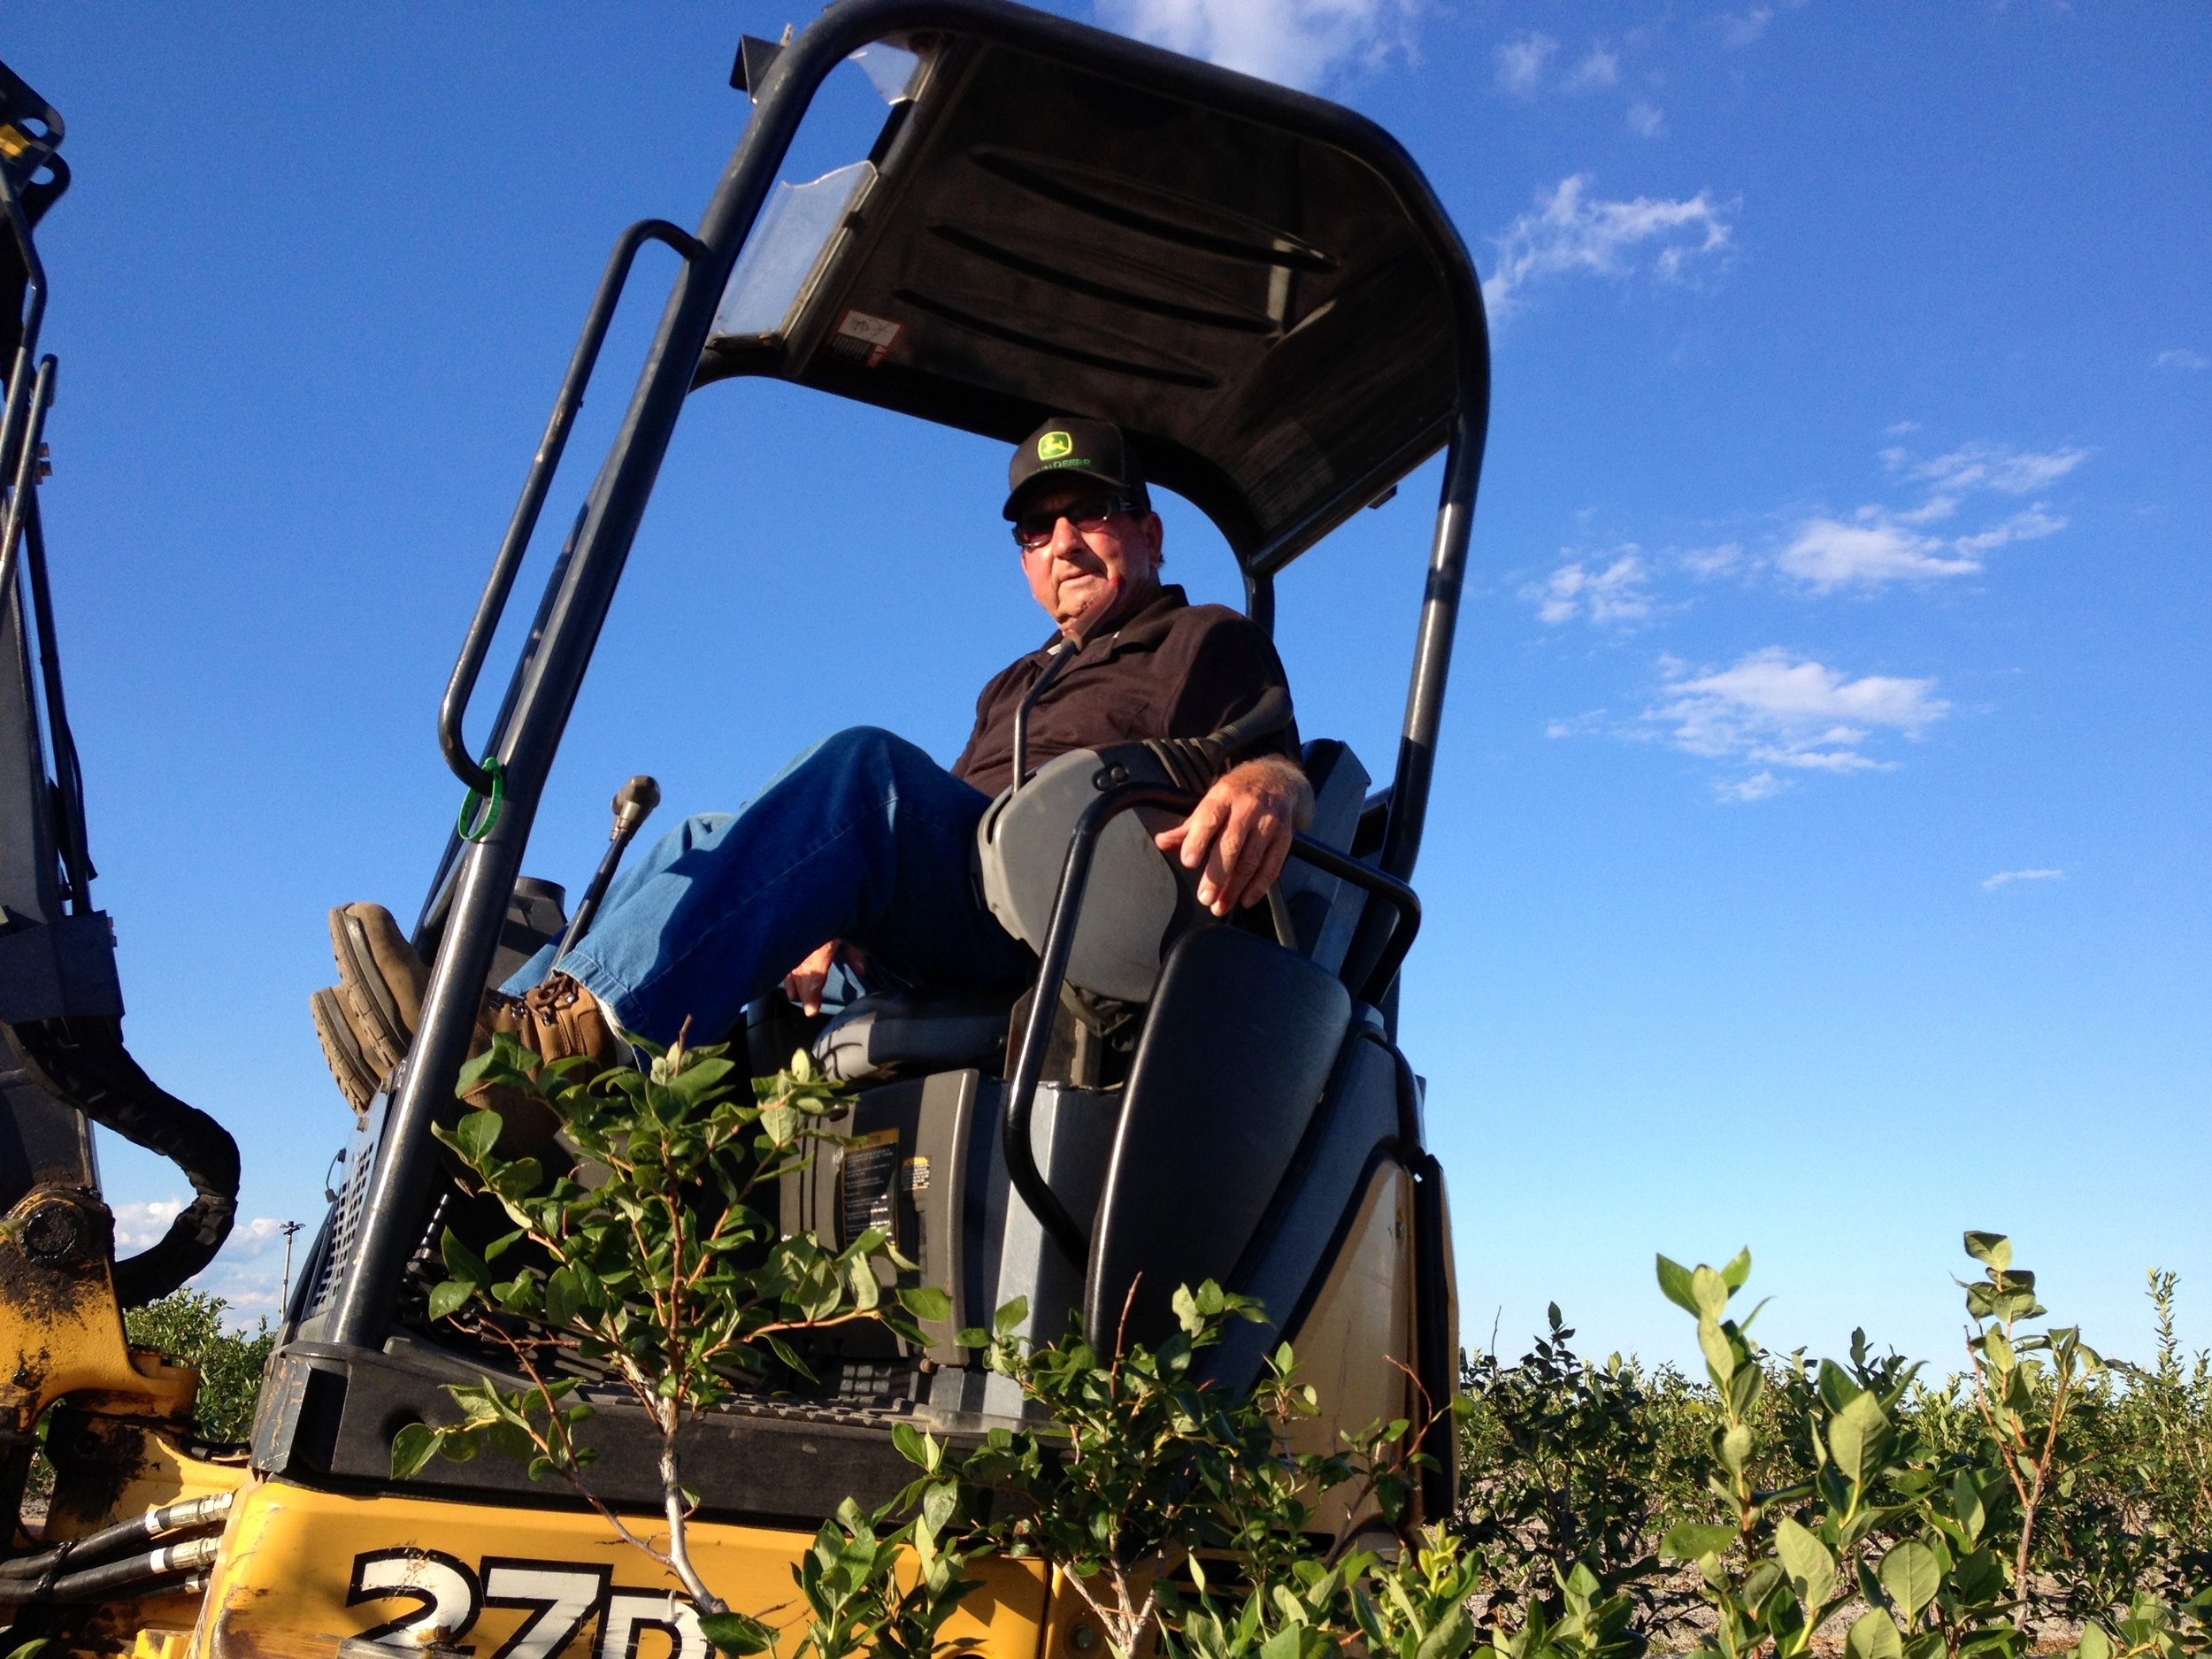 DiMeo Blueberry Farms Replanting Blueberry Bushes.jpg